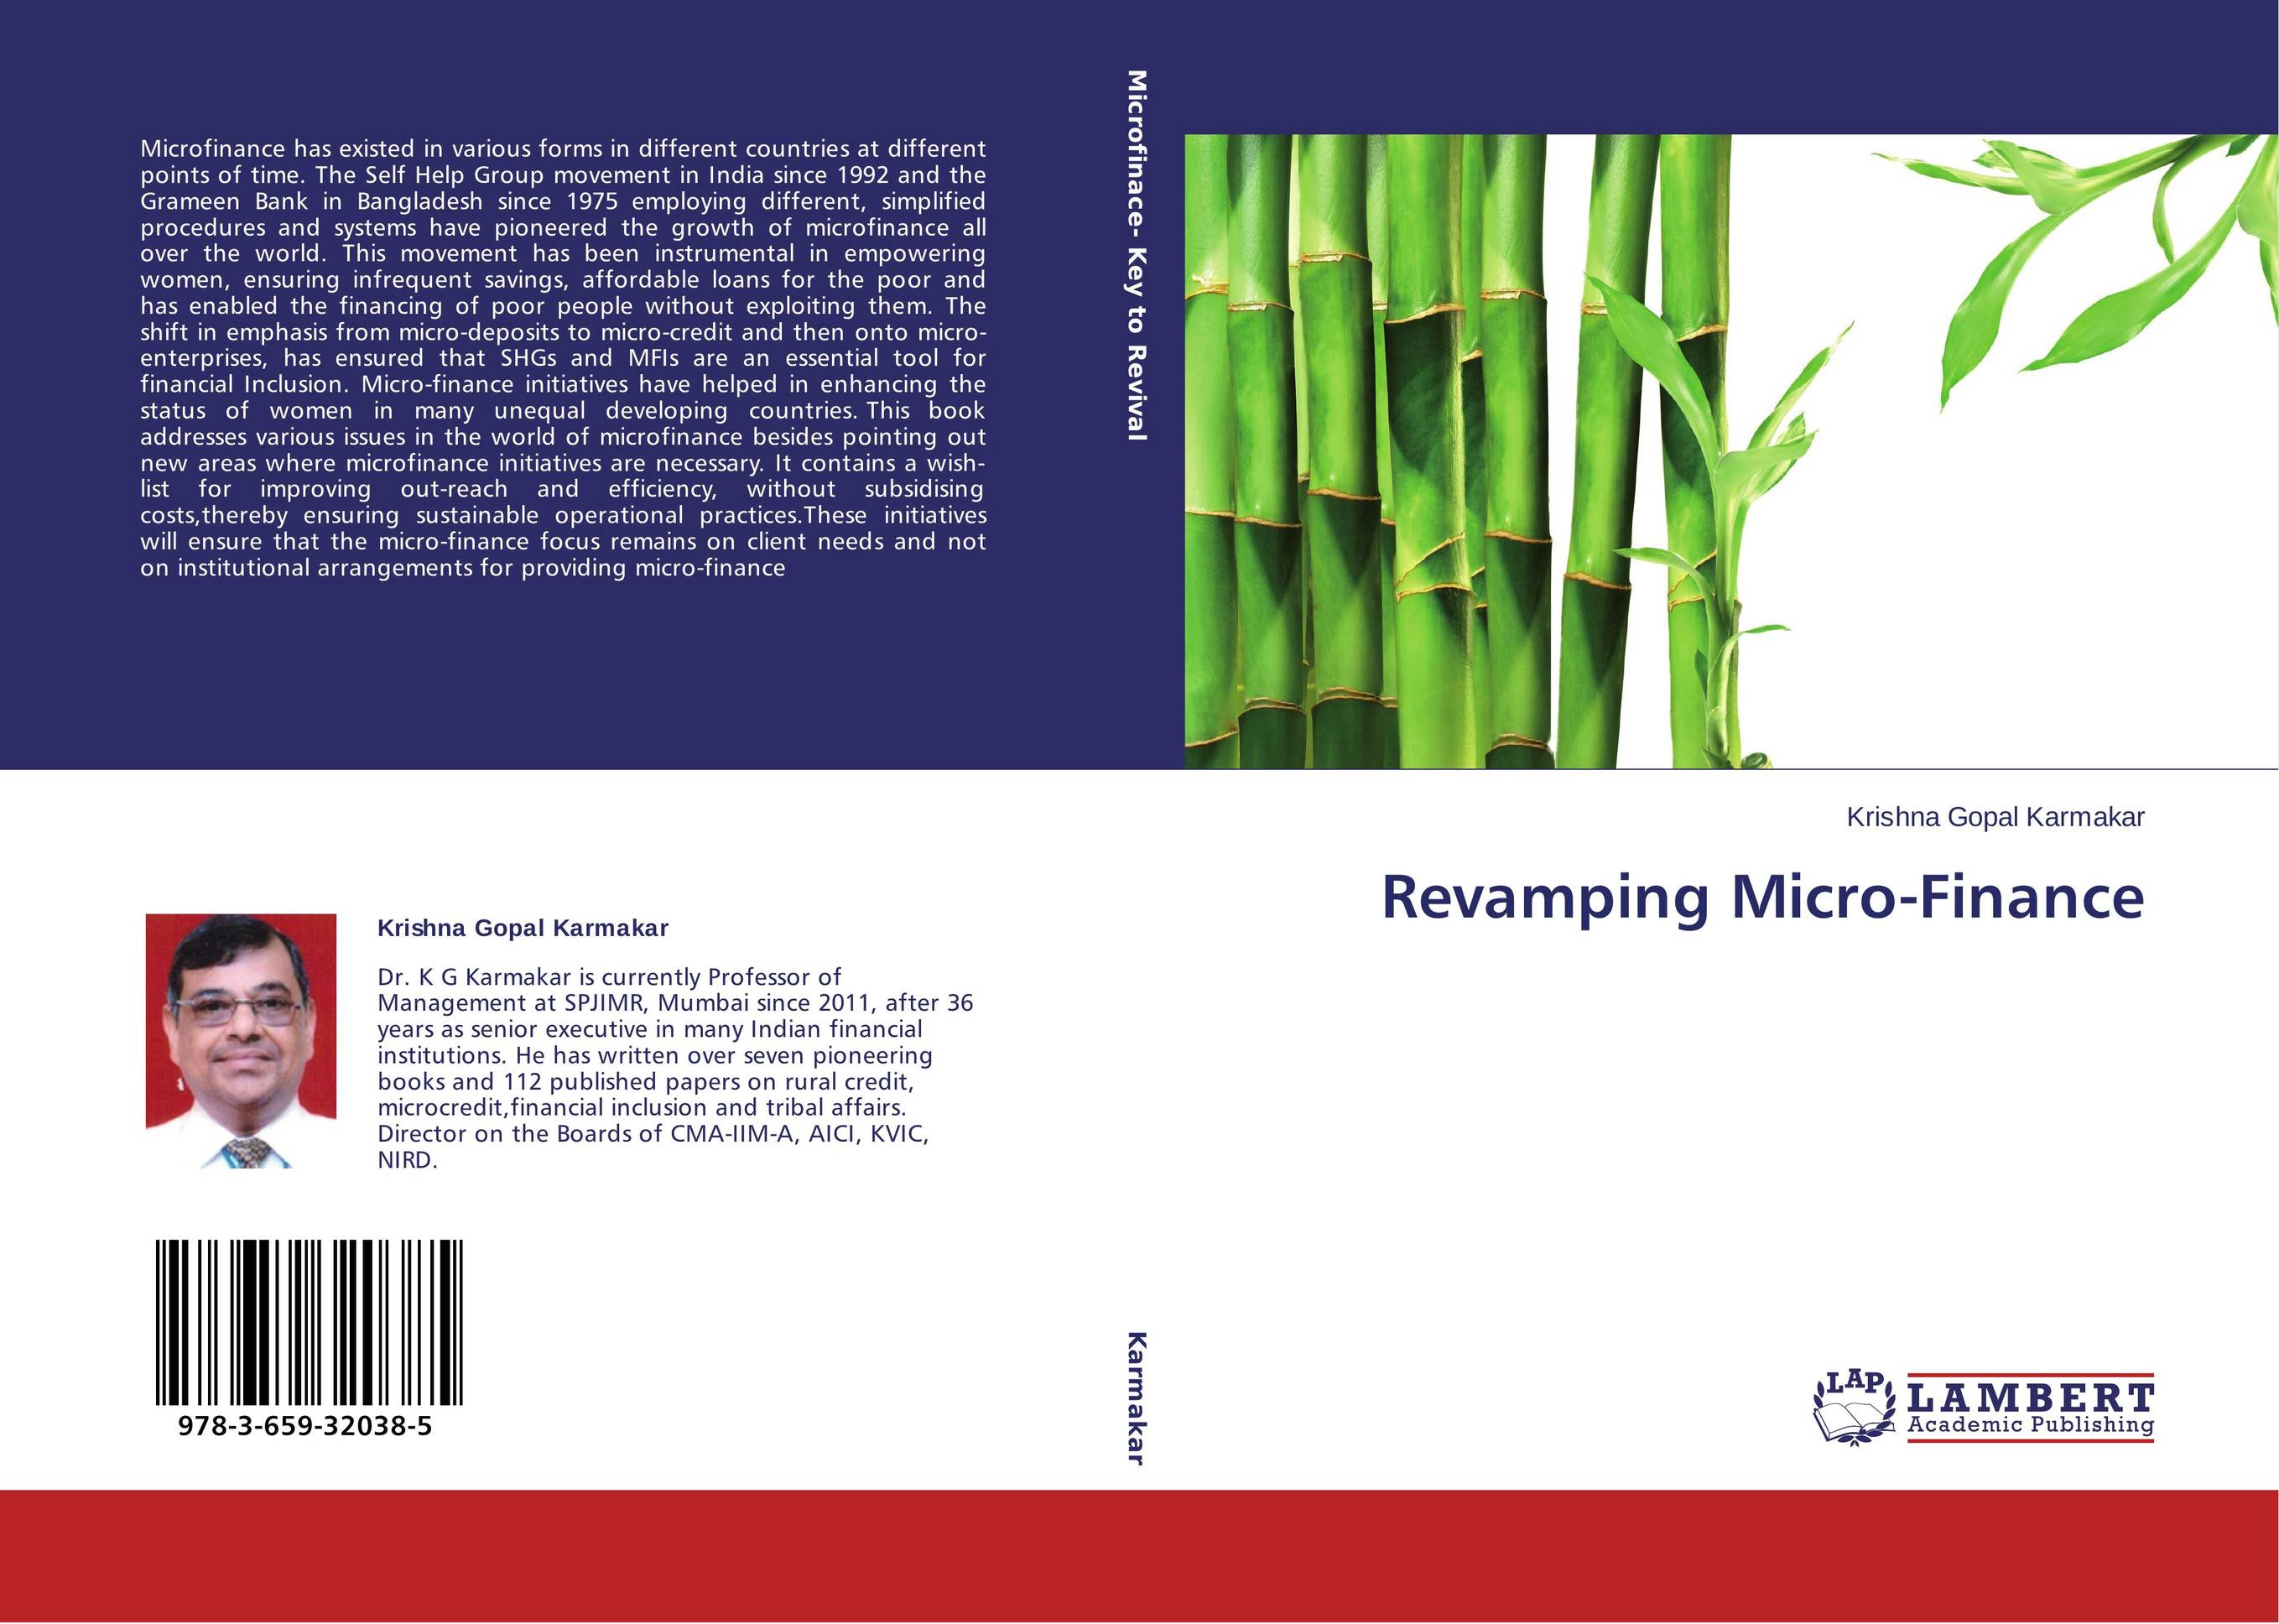 the concepts of microfinance and microcredit Financial management theory for microfinance organizations (mfos) applies financial concepts developed for traditional businesses to microfinance organizations many concepts pertaining to small business financial management theory are applicable to mfos.